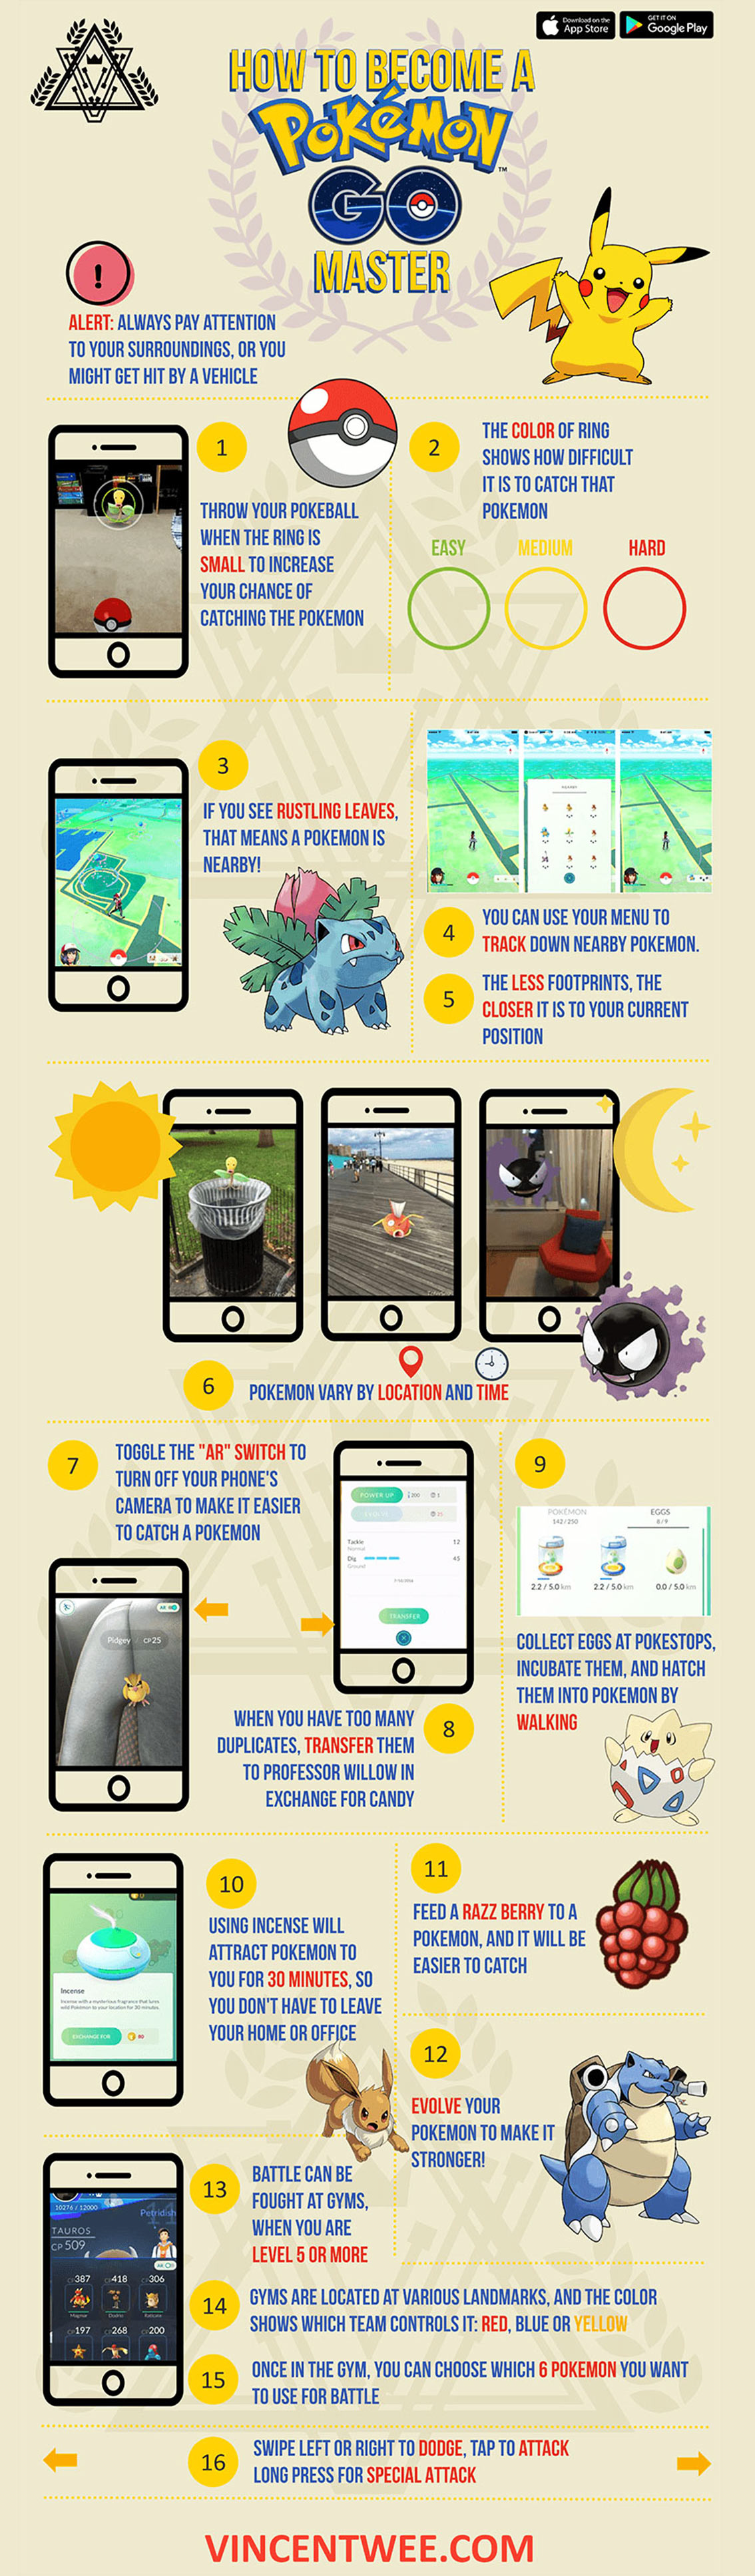 How to Become a Pokemon GO Master - Mobile Game Infographic